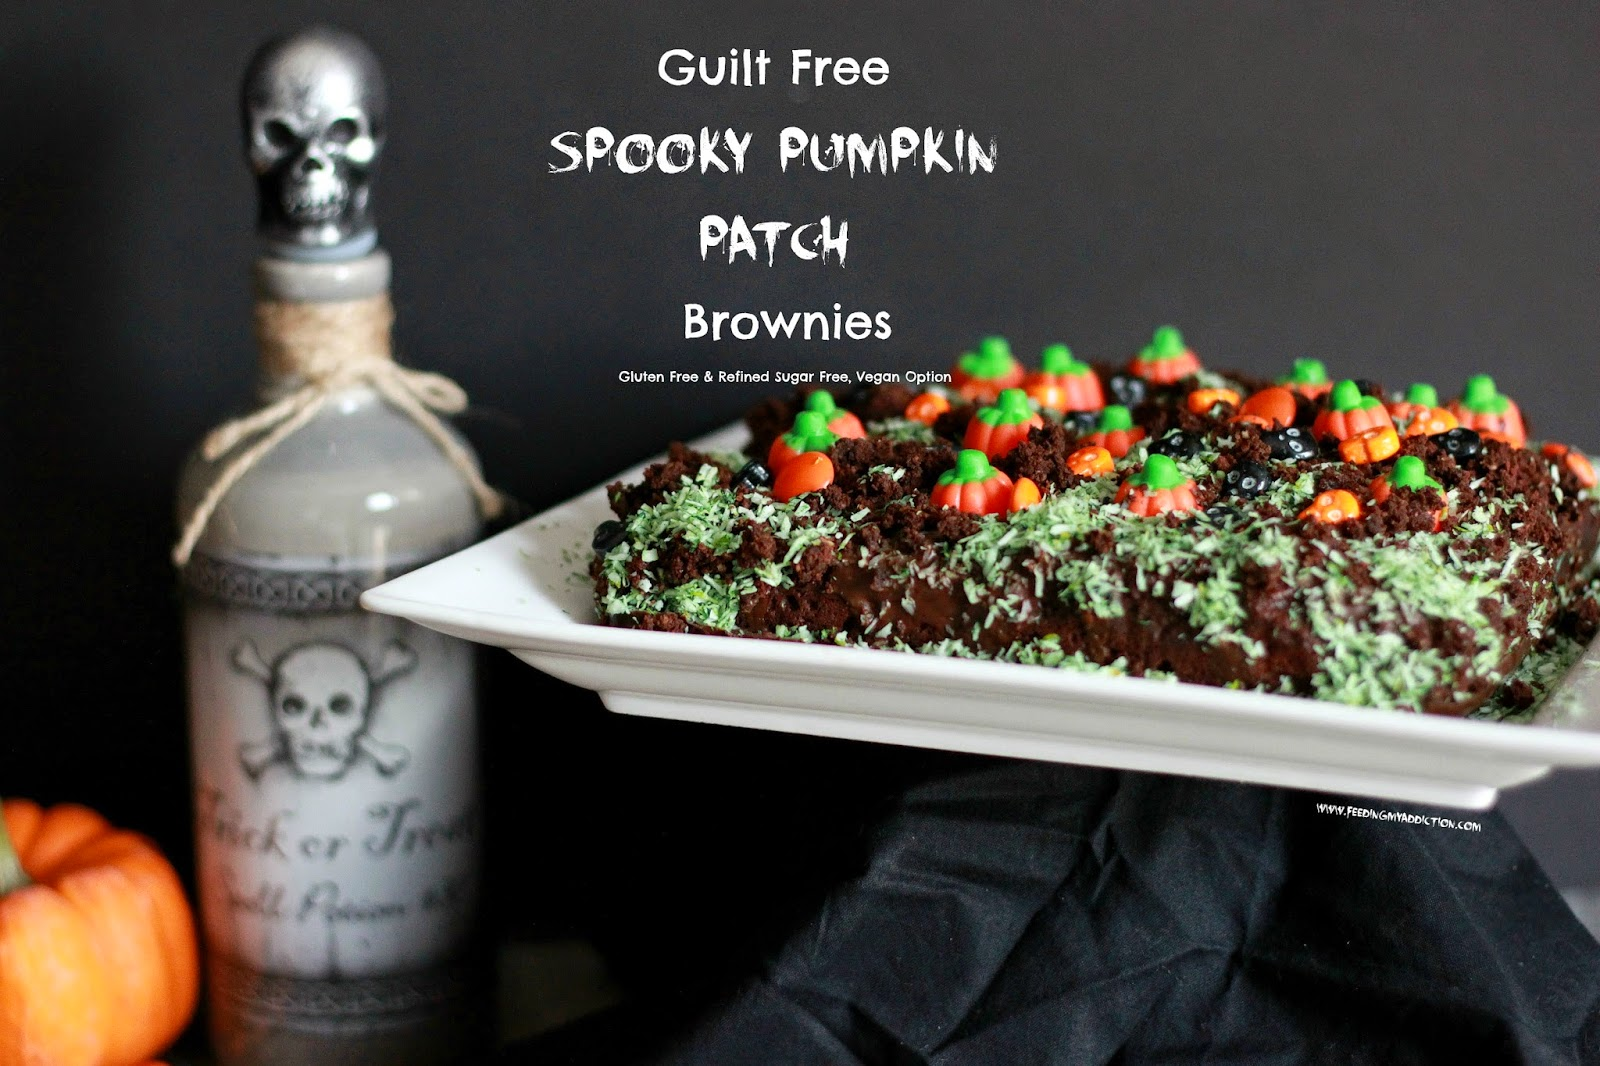 Feeding My Addiction: Guilt Free Spooky Pumpkin Patch Brownies